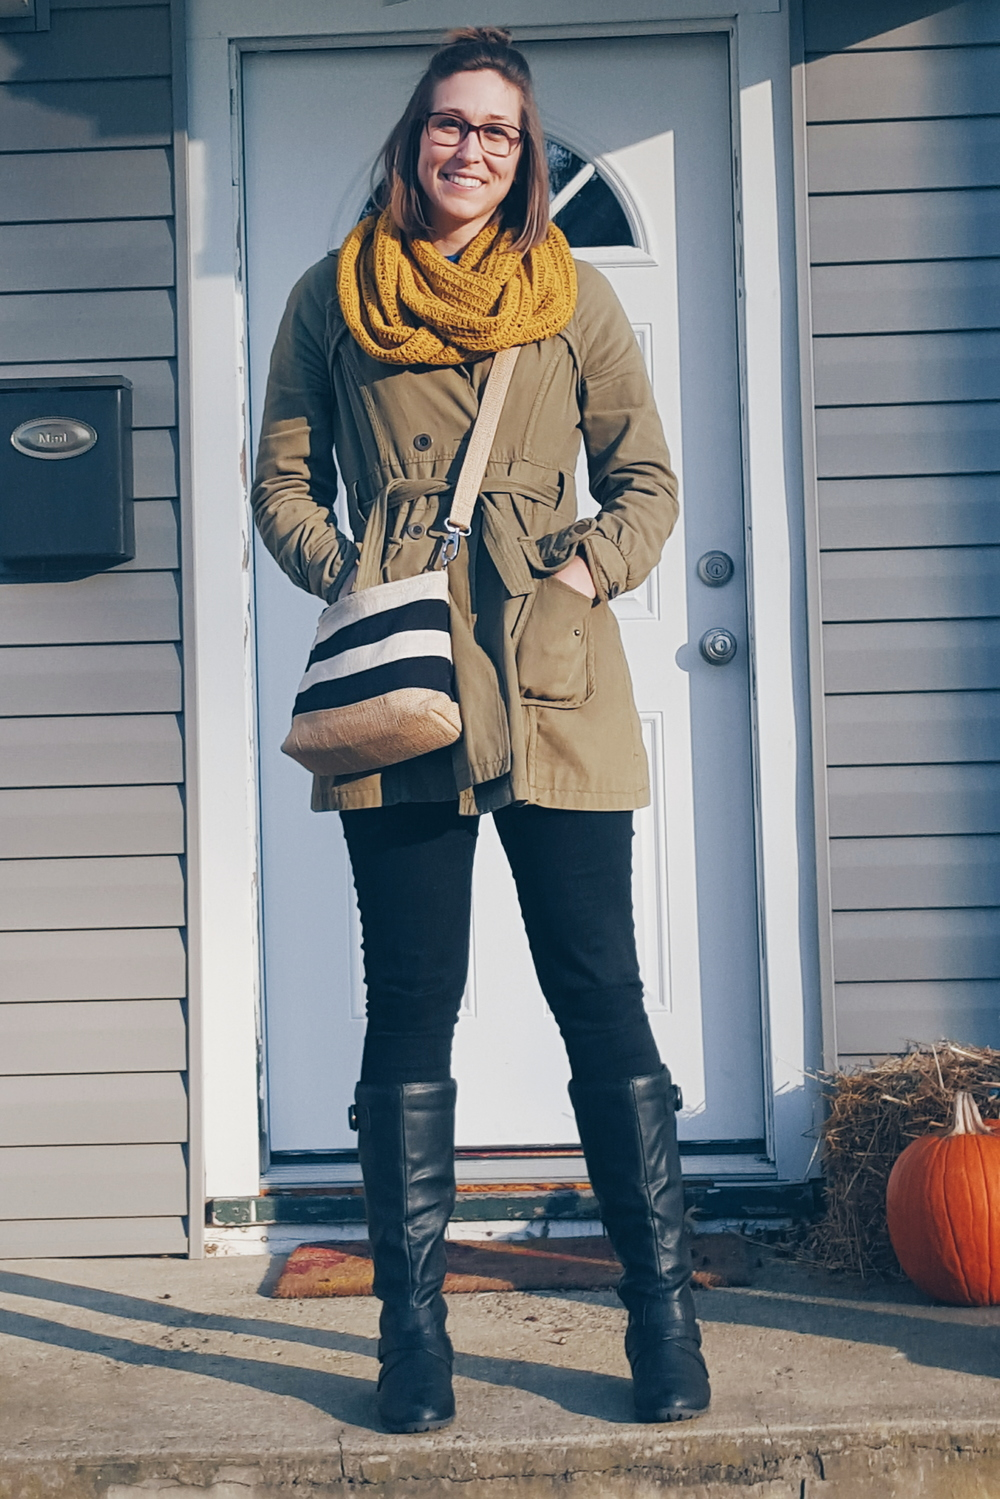 Megan & her Fall Faves!